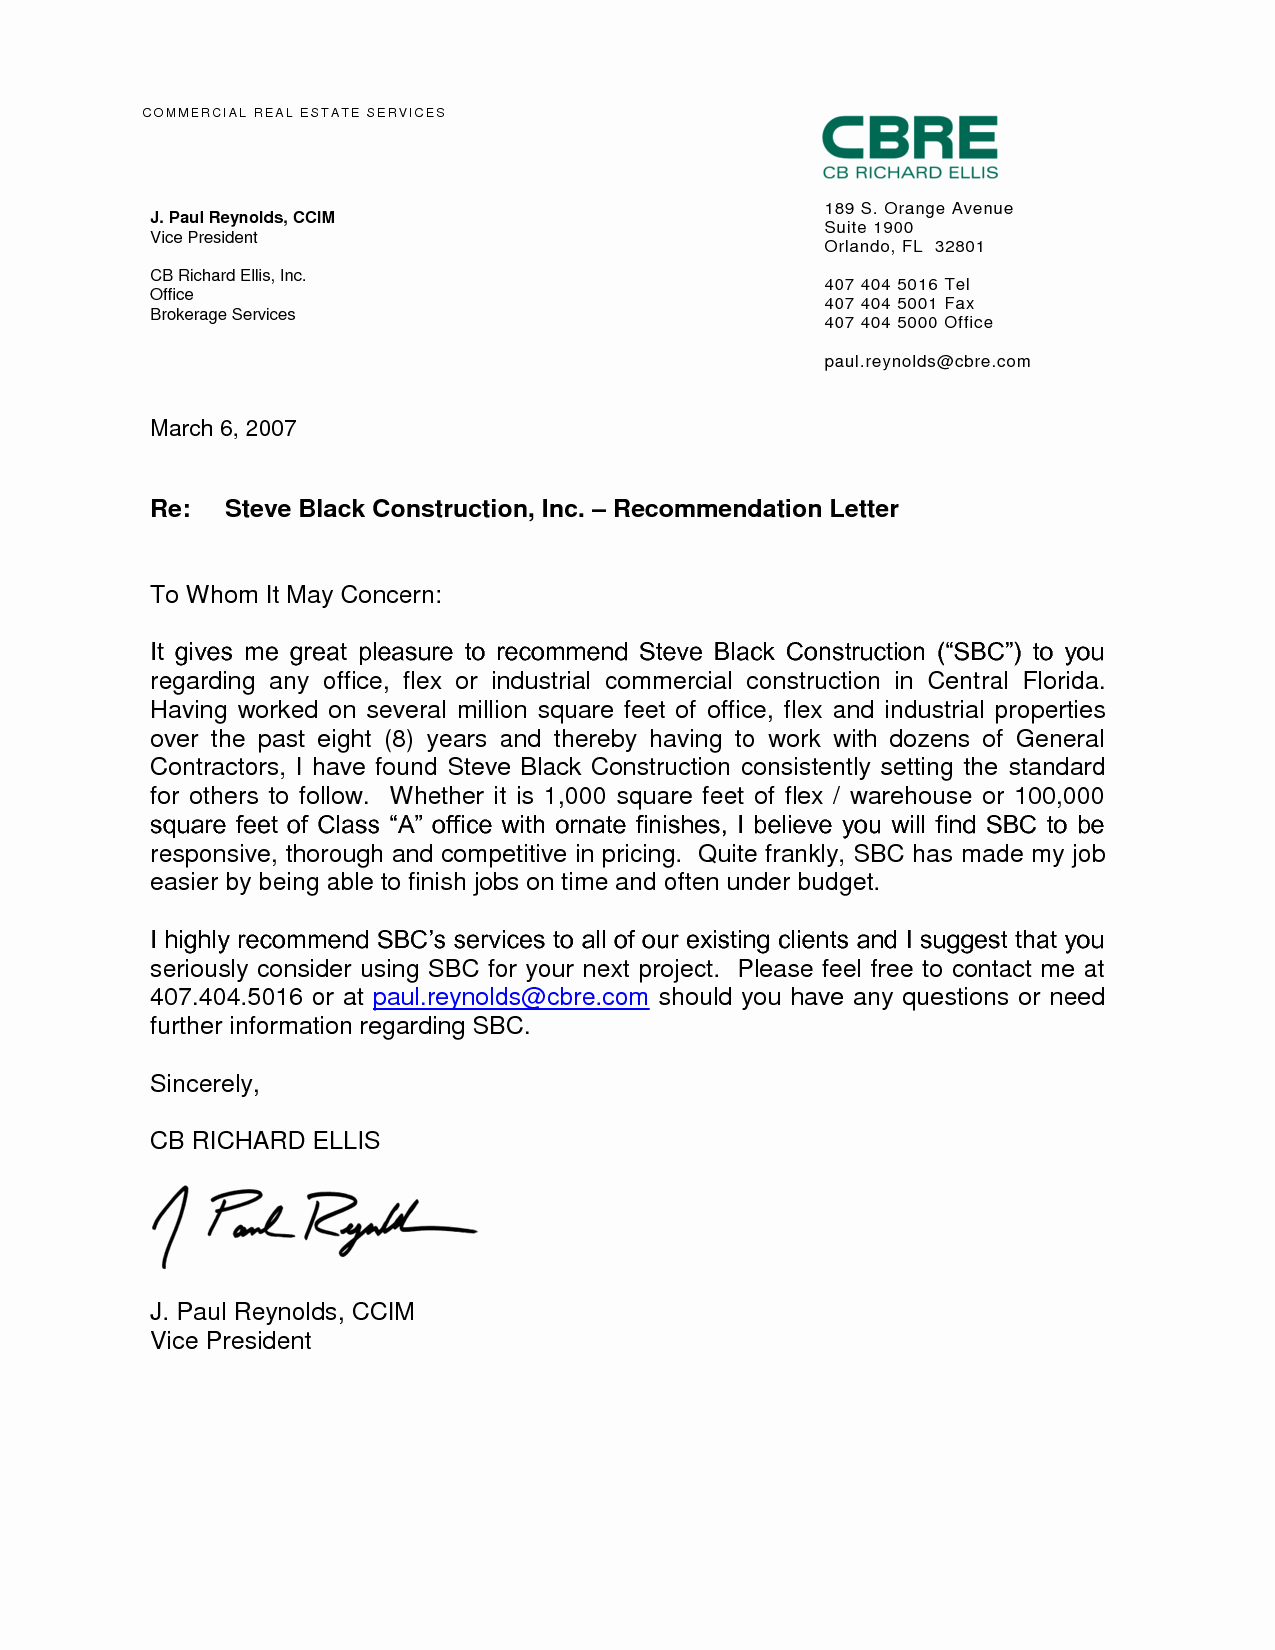 Letter Of Recommendation Template Free Awesome Reference Letter for A Job Best Letter